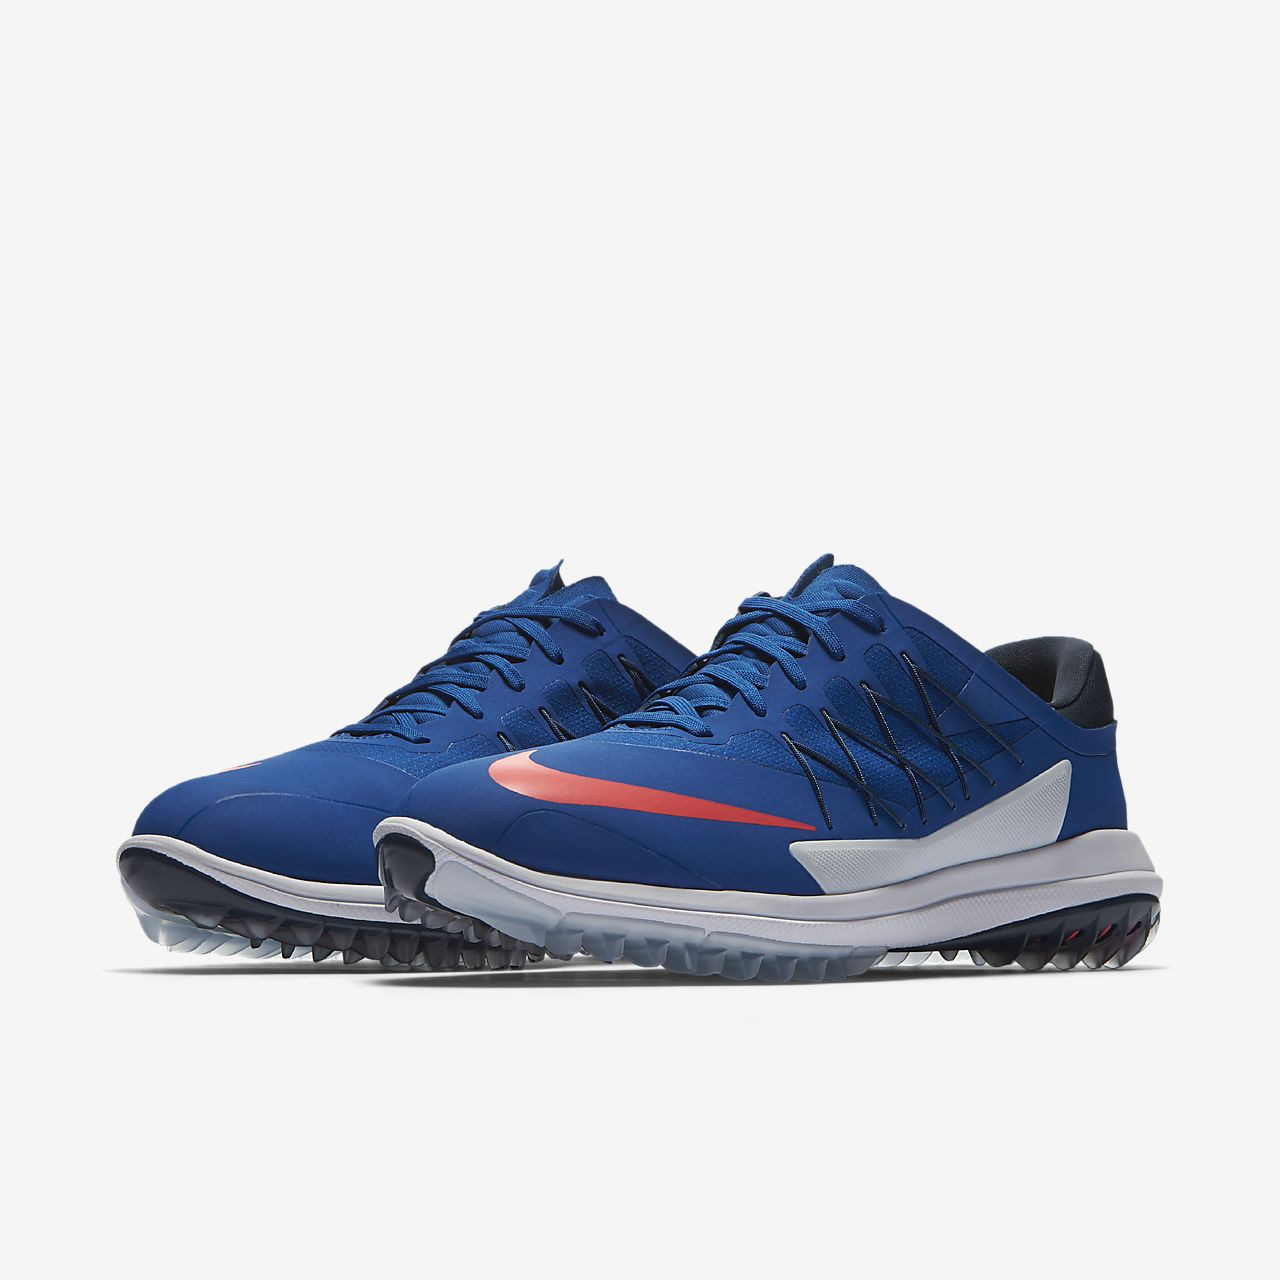 nike lunarlon mens blue nike flyknit one plus